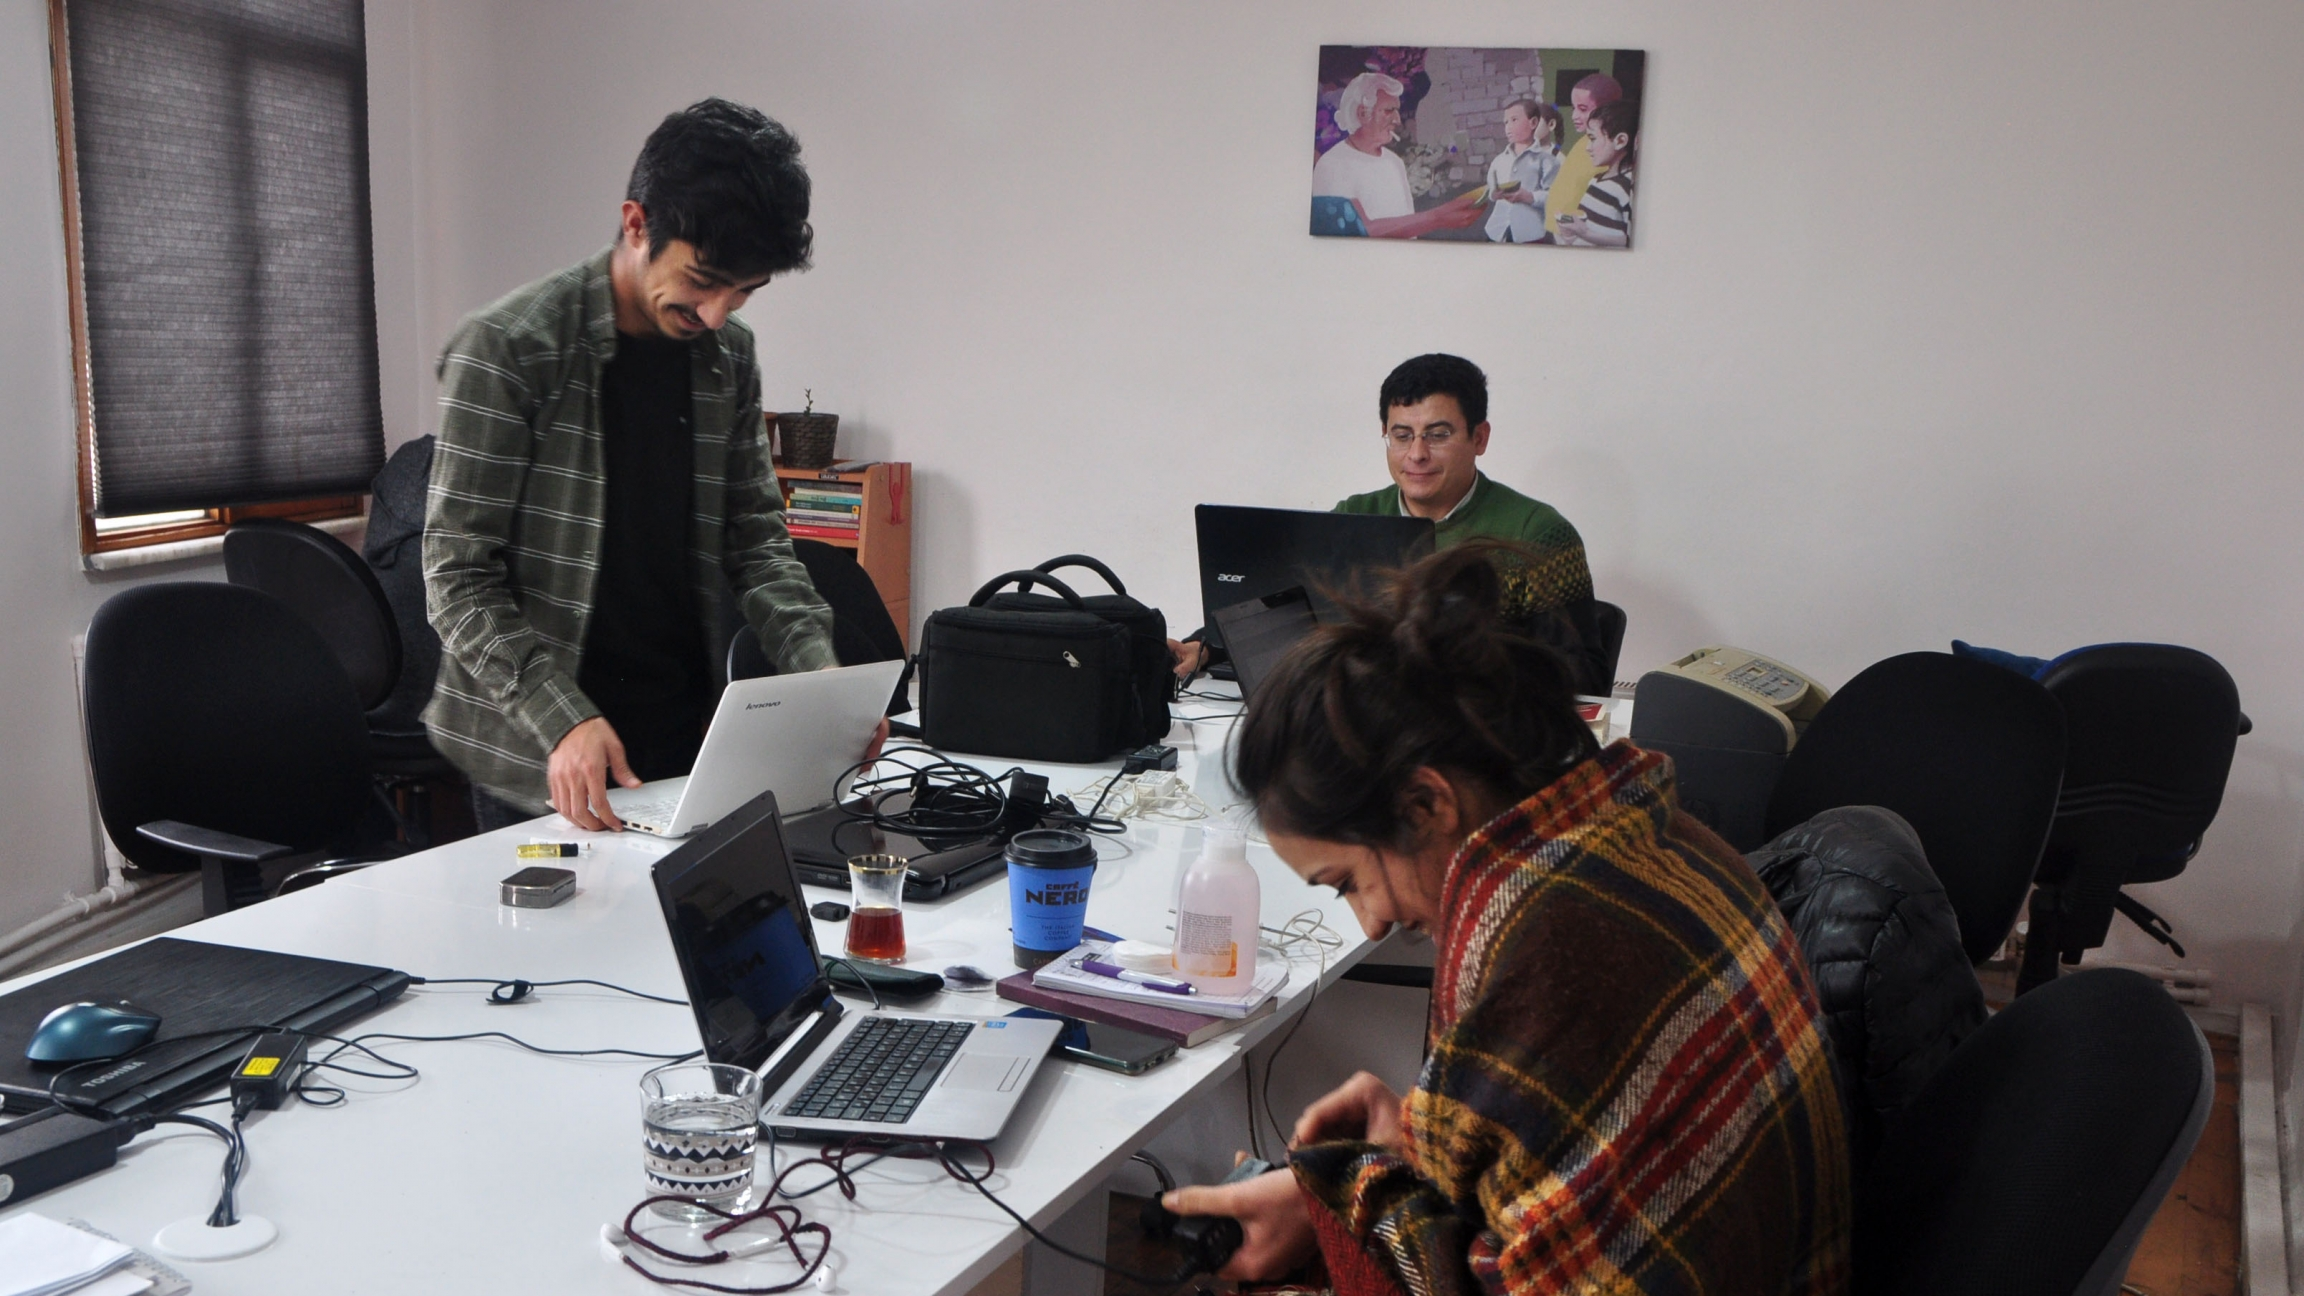 A team of journalists gather around a table with laptops